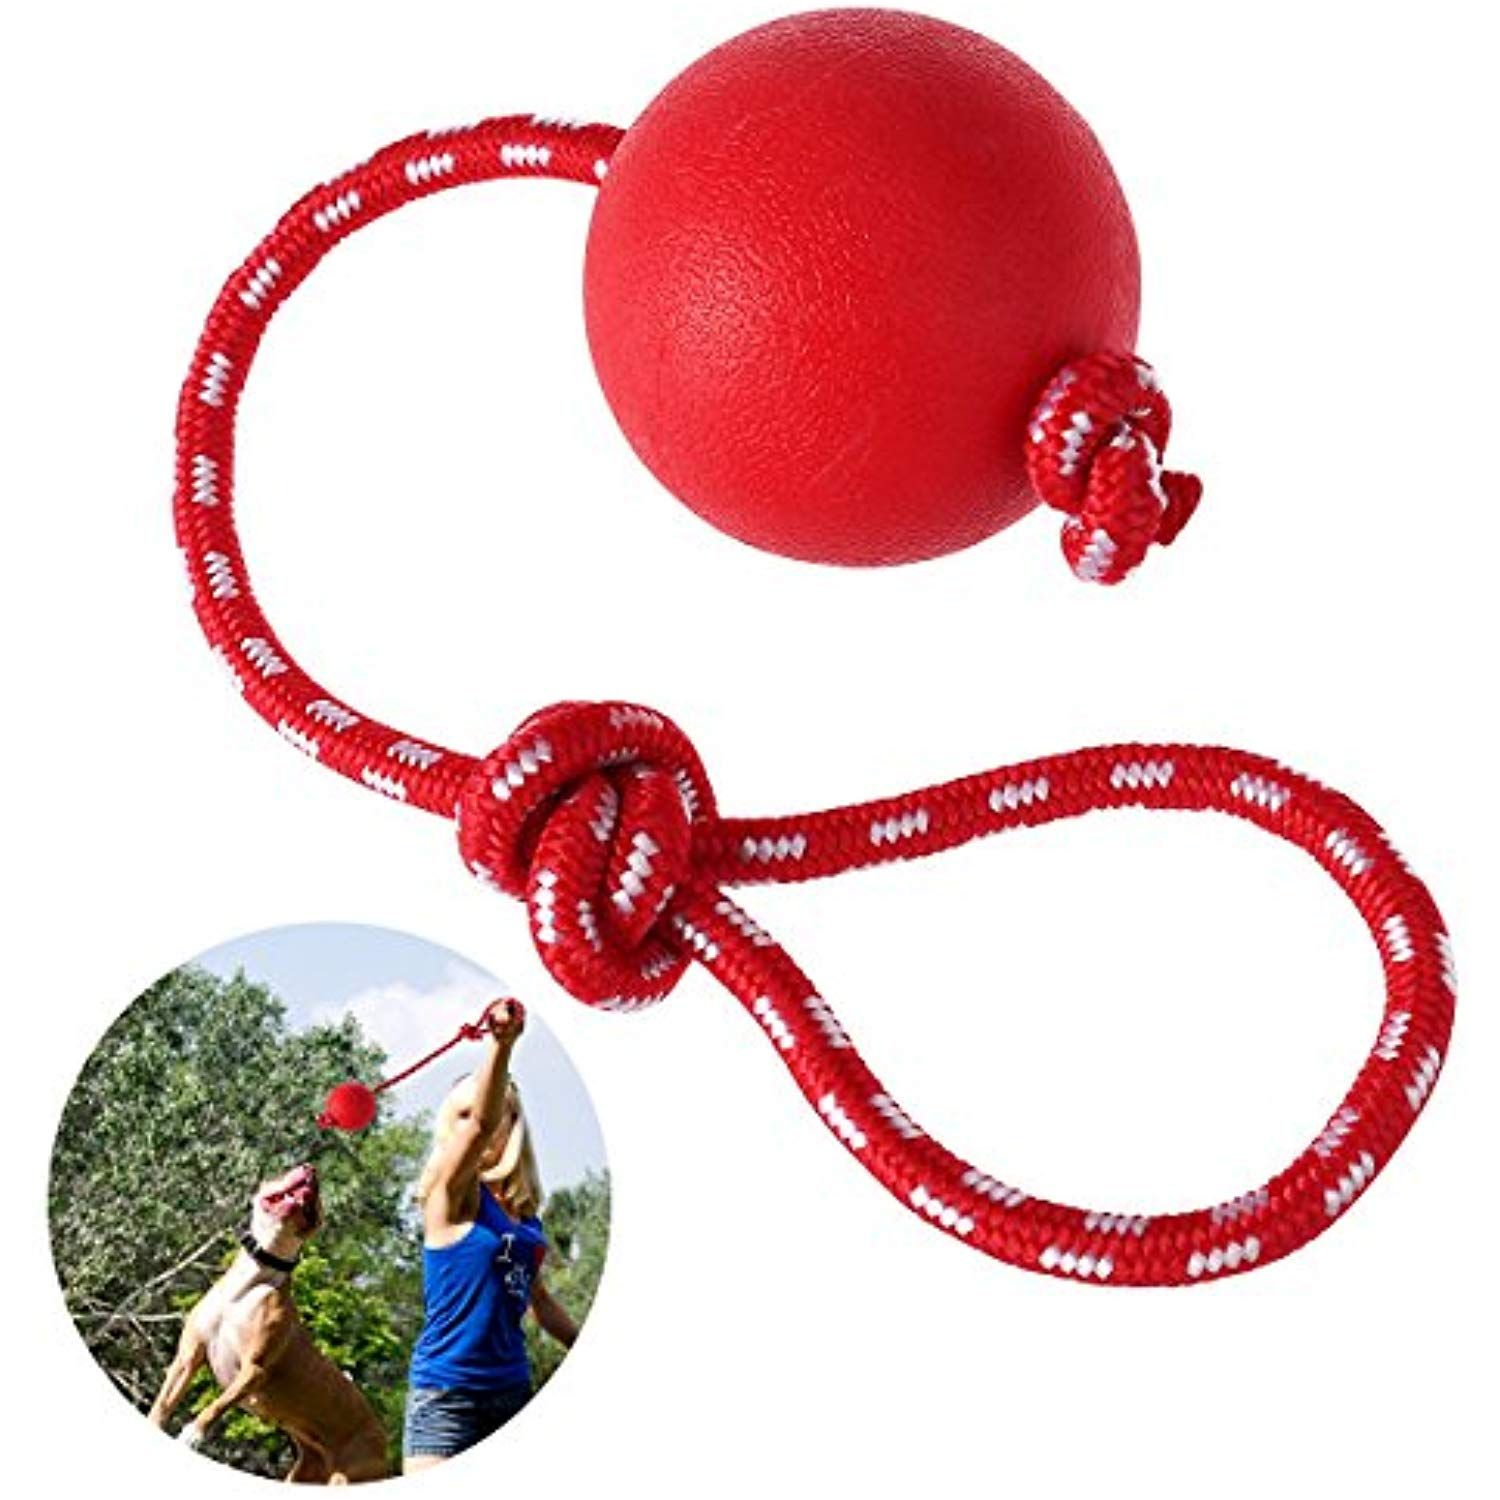 Ueetek Pet Rubber Chew Toy Ball With Rope Dog Interactive Ball